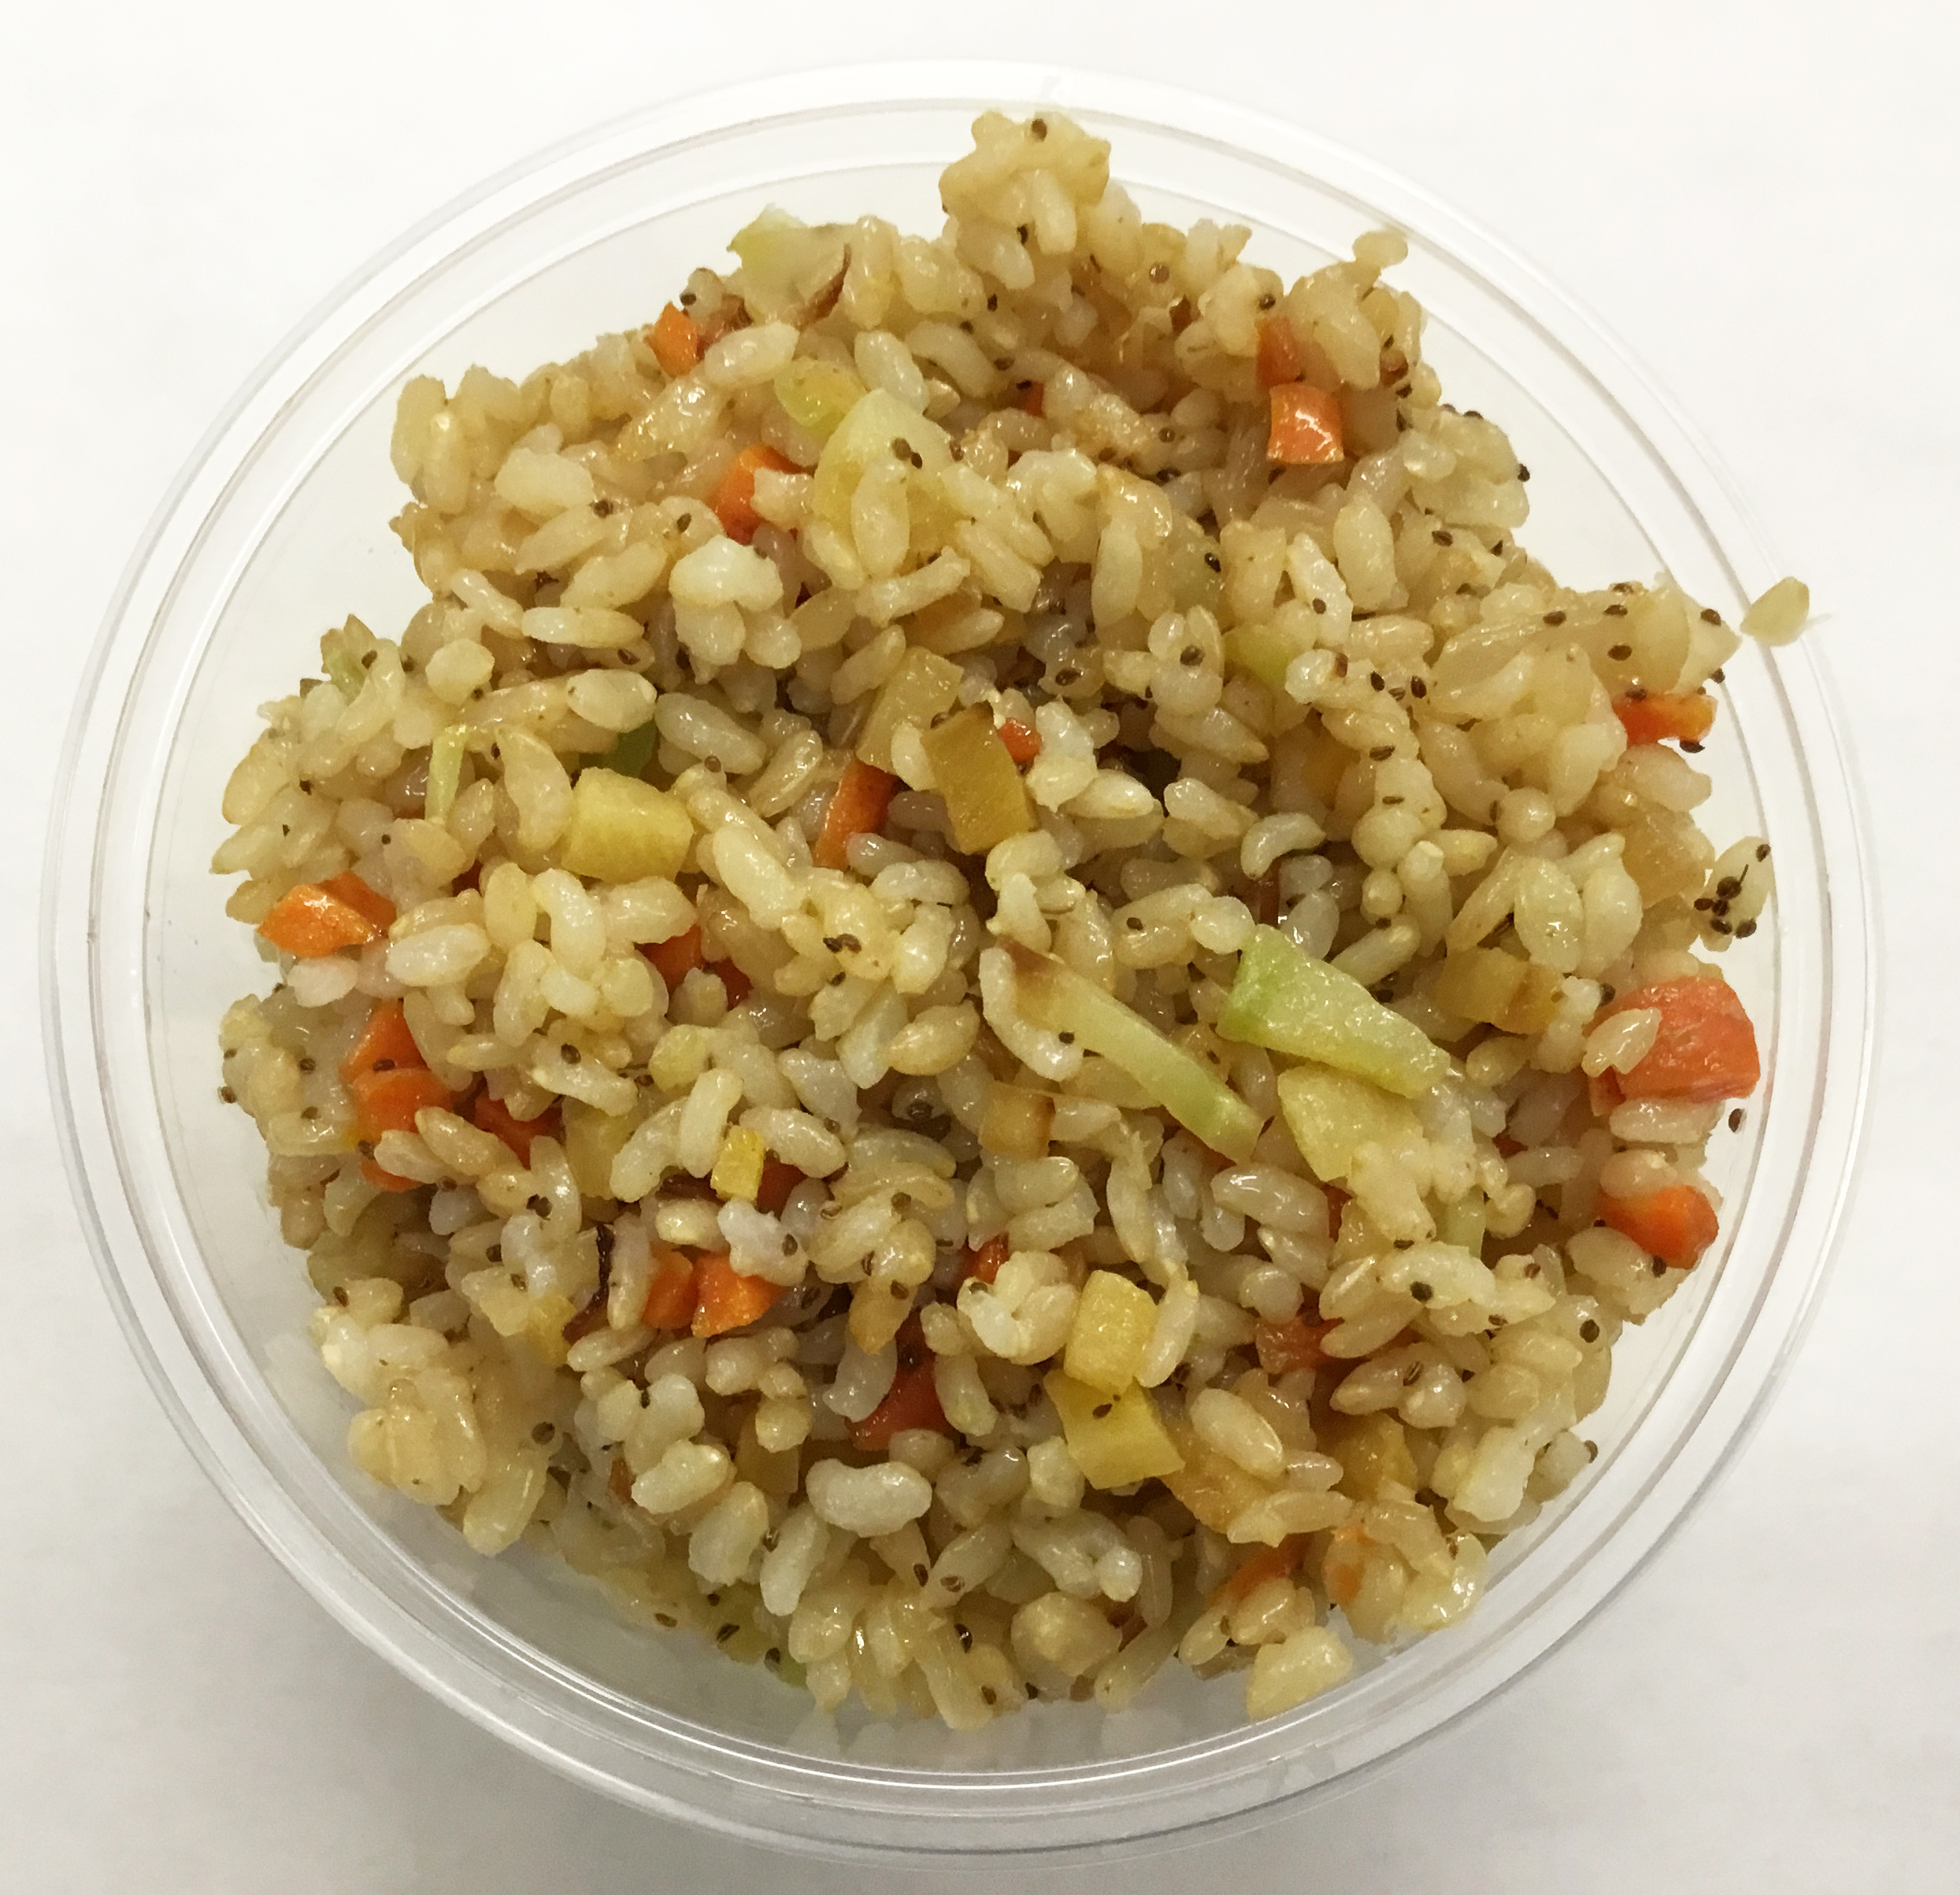 Stir fried brown rice with rutabaga, carrot, onion, broccoli stems and celery seeds.